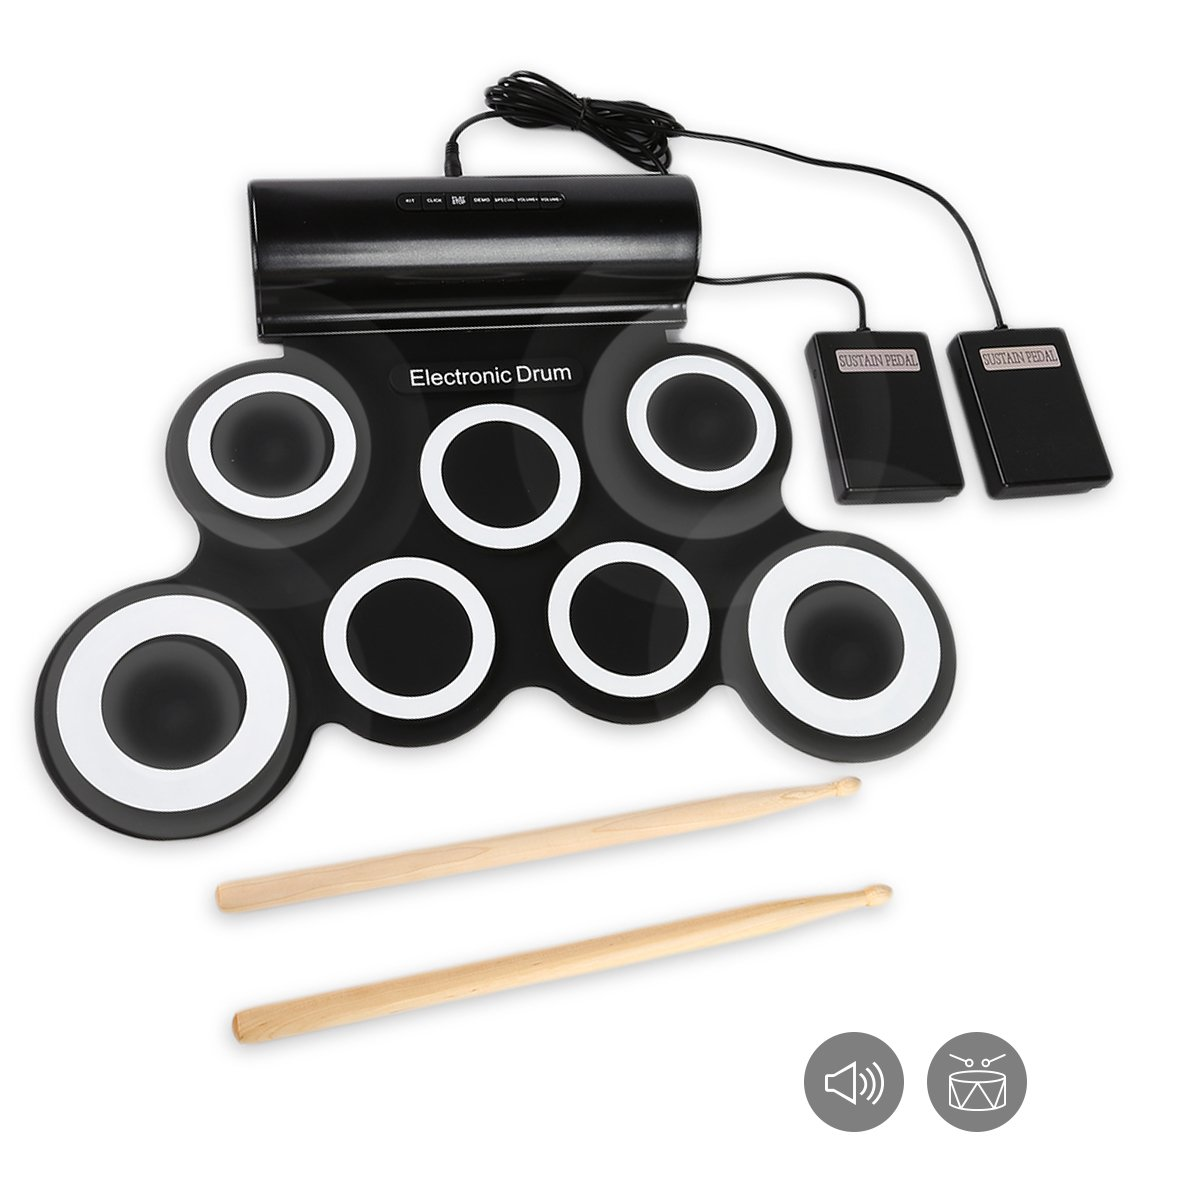 JouerNow G3001A 7 Pads Electronic Roll Up Drum Pad Kit SAINSTORE INC